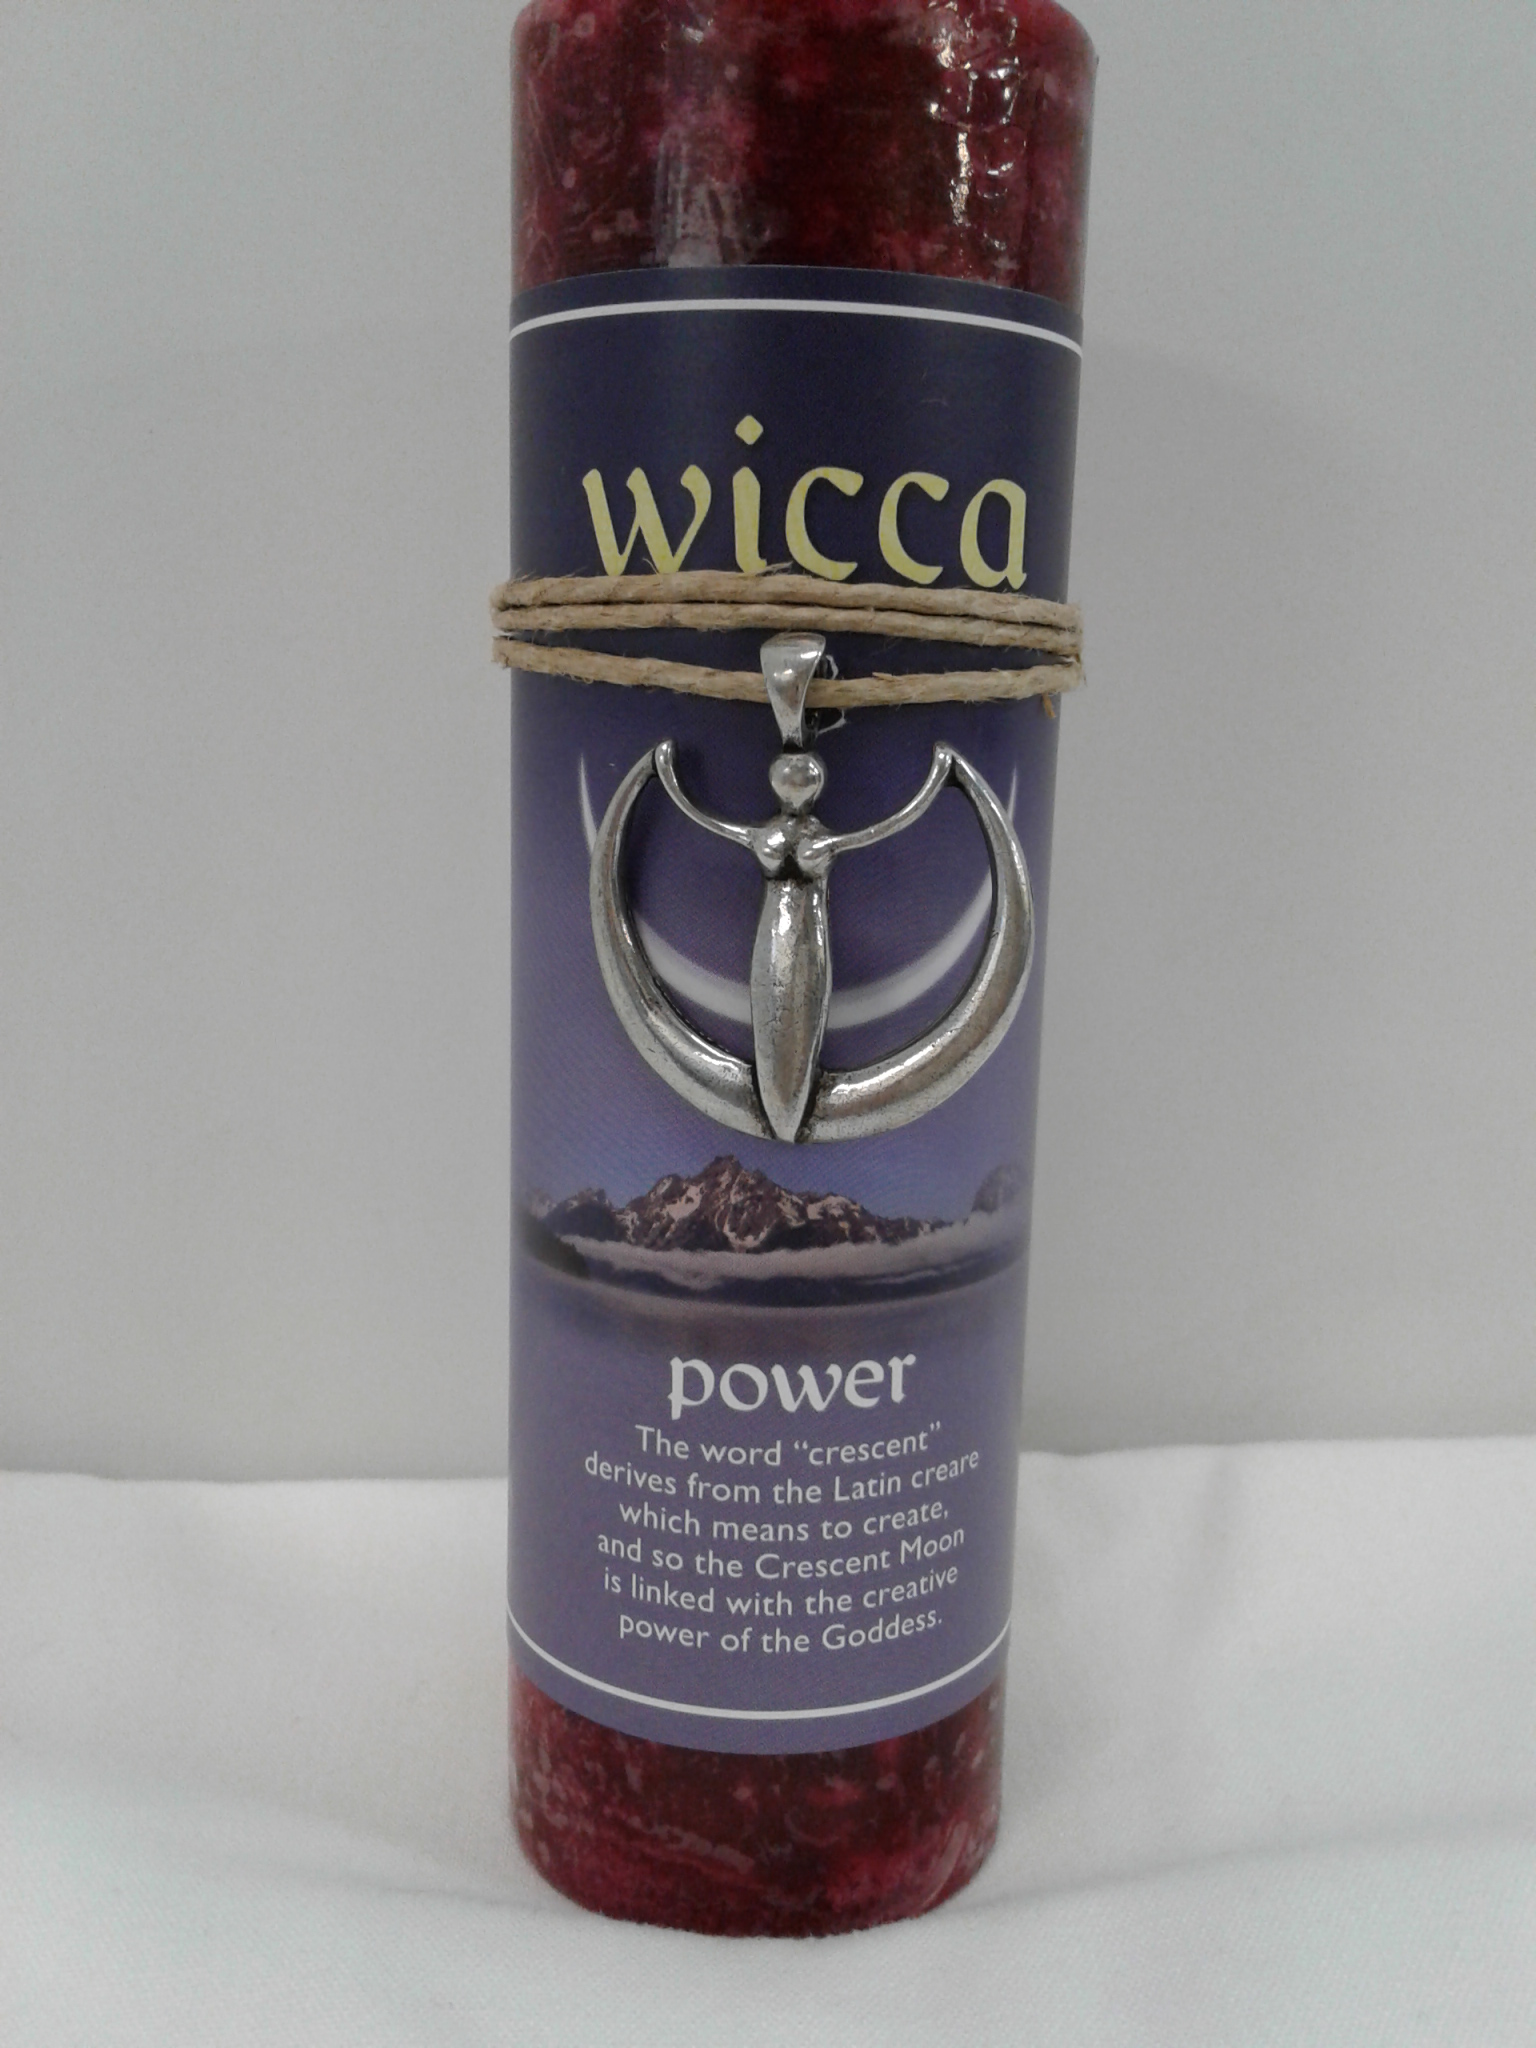 wicca power